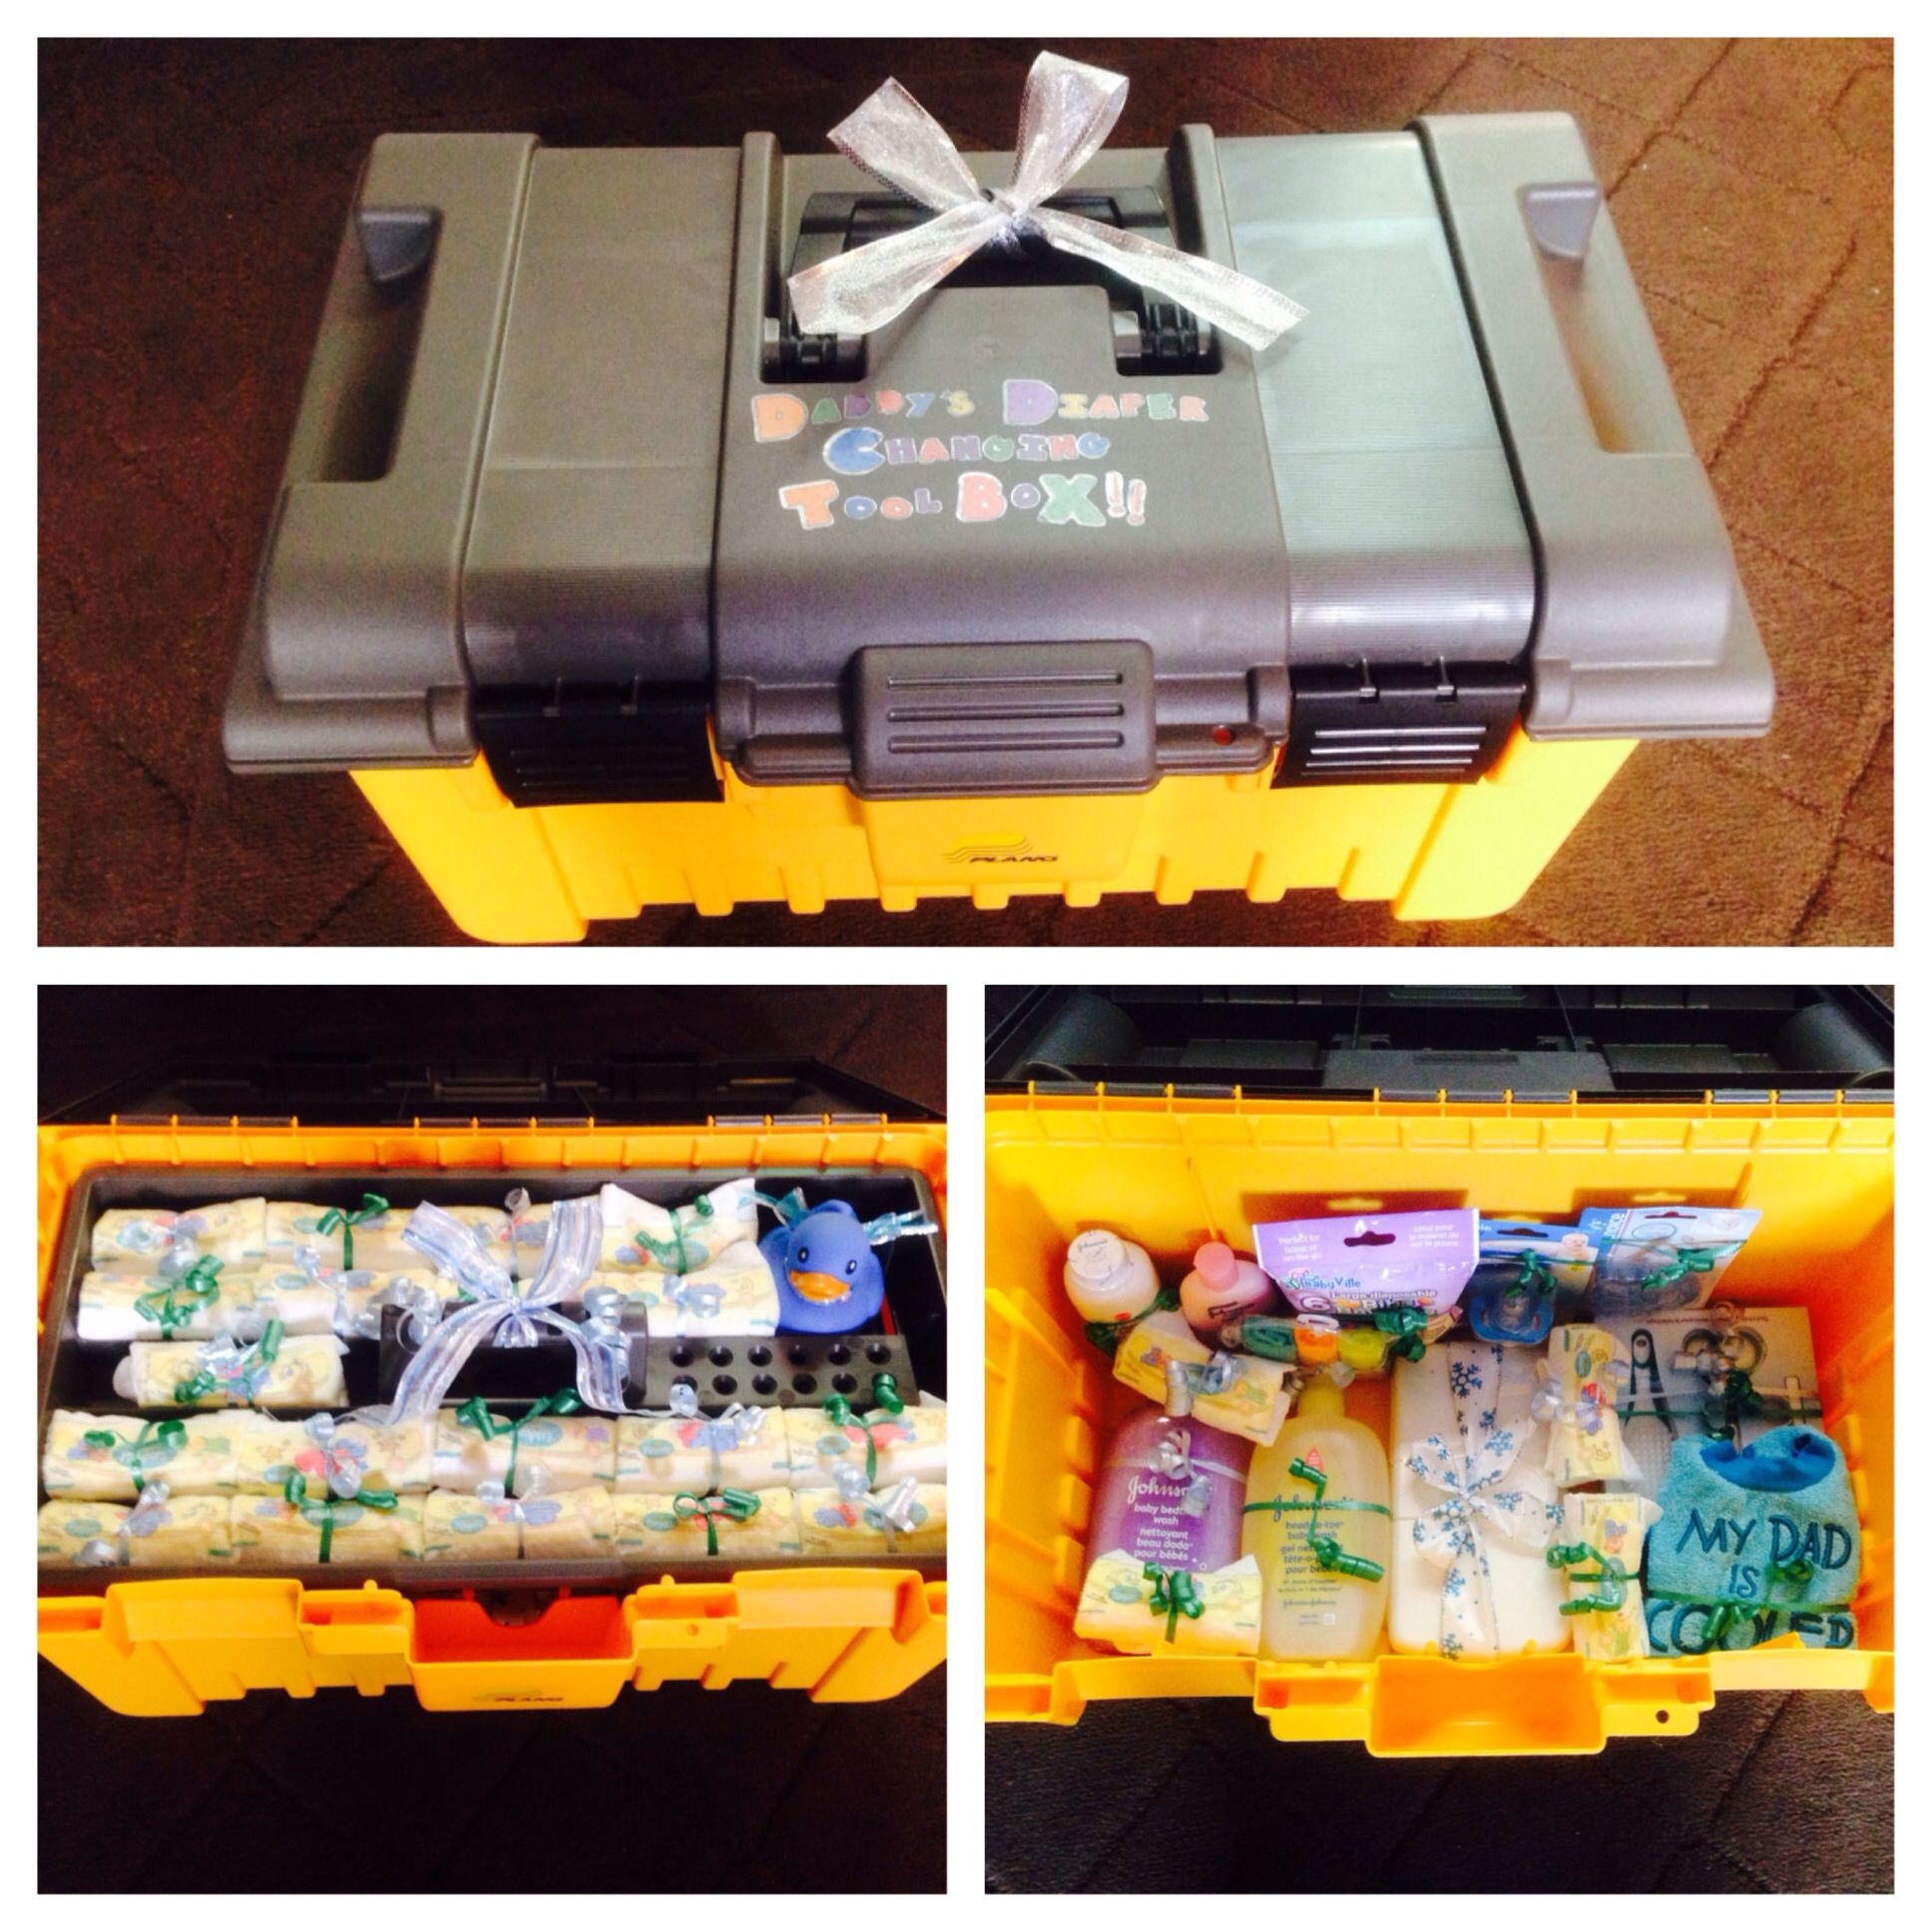 Daddy S Diaper Changing Tool Box I Made For My Husband For